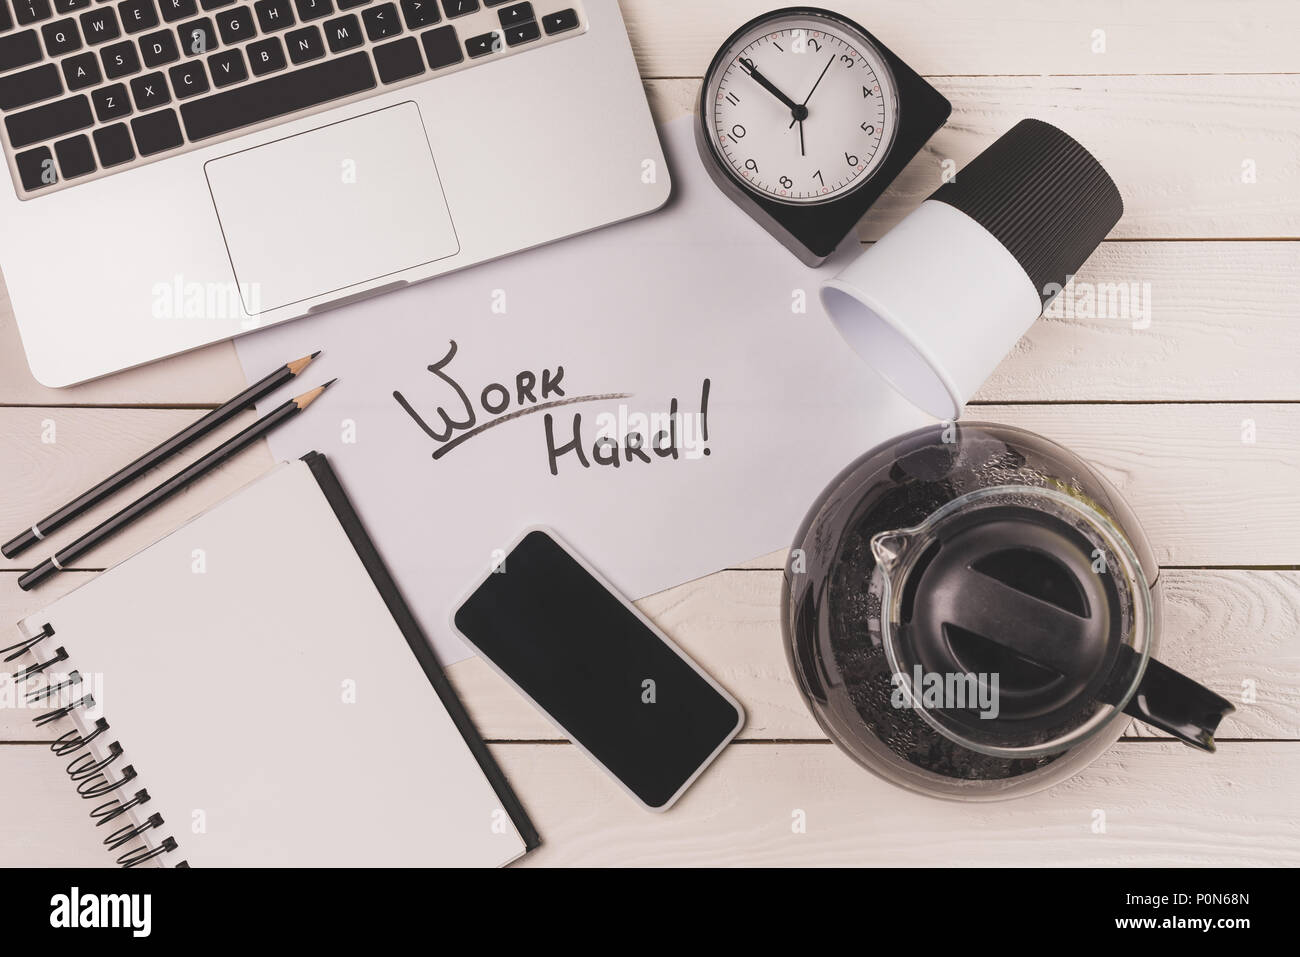 top view of laptop, coffee pot, paper cup, clock, smartphone and inscription work hard at workplace - Stock Image